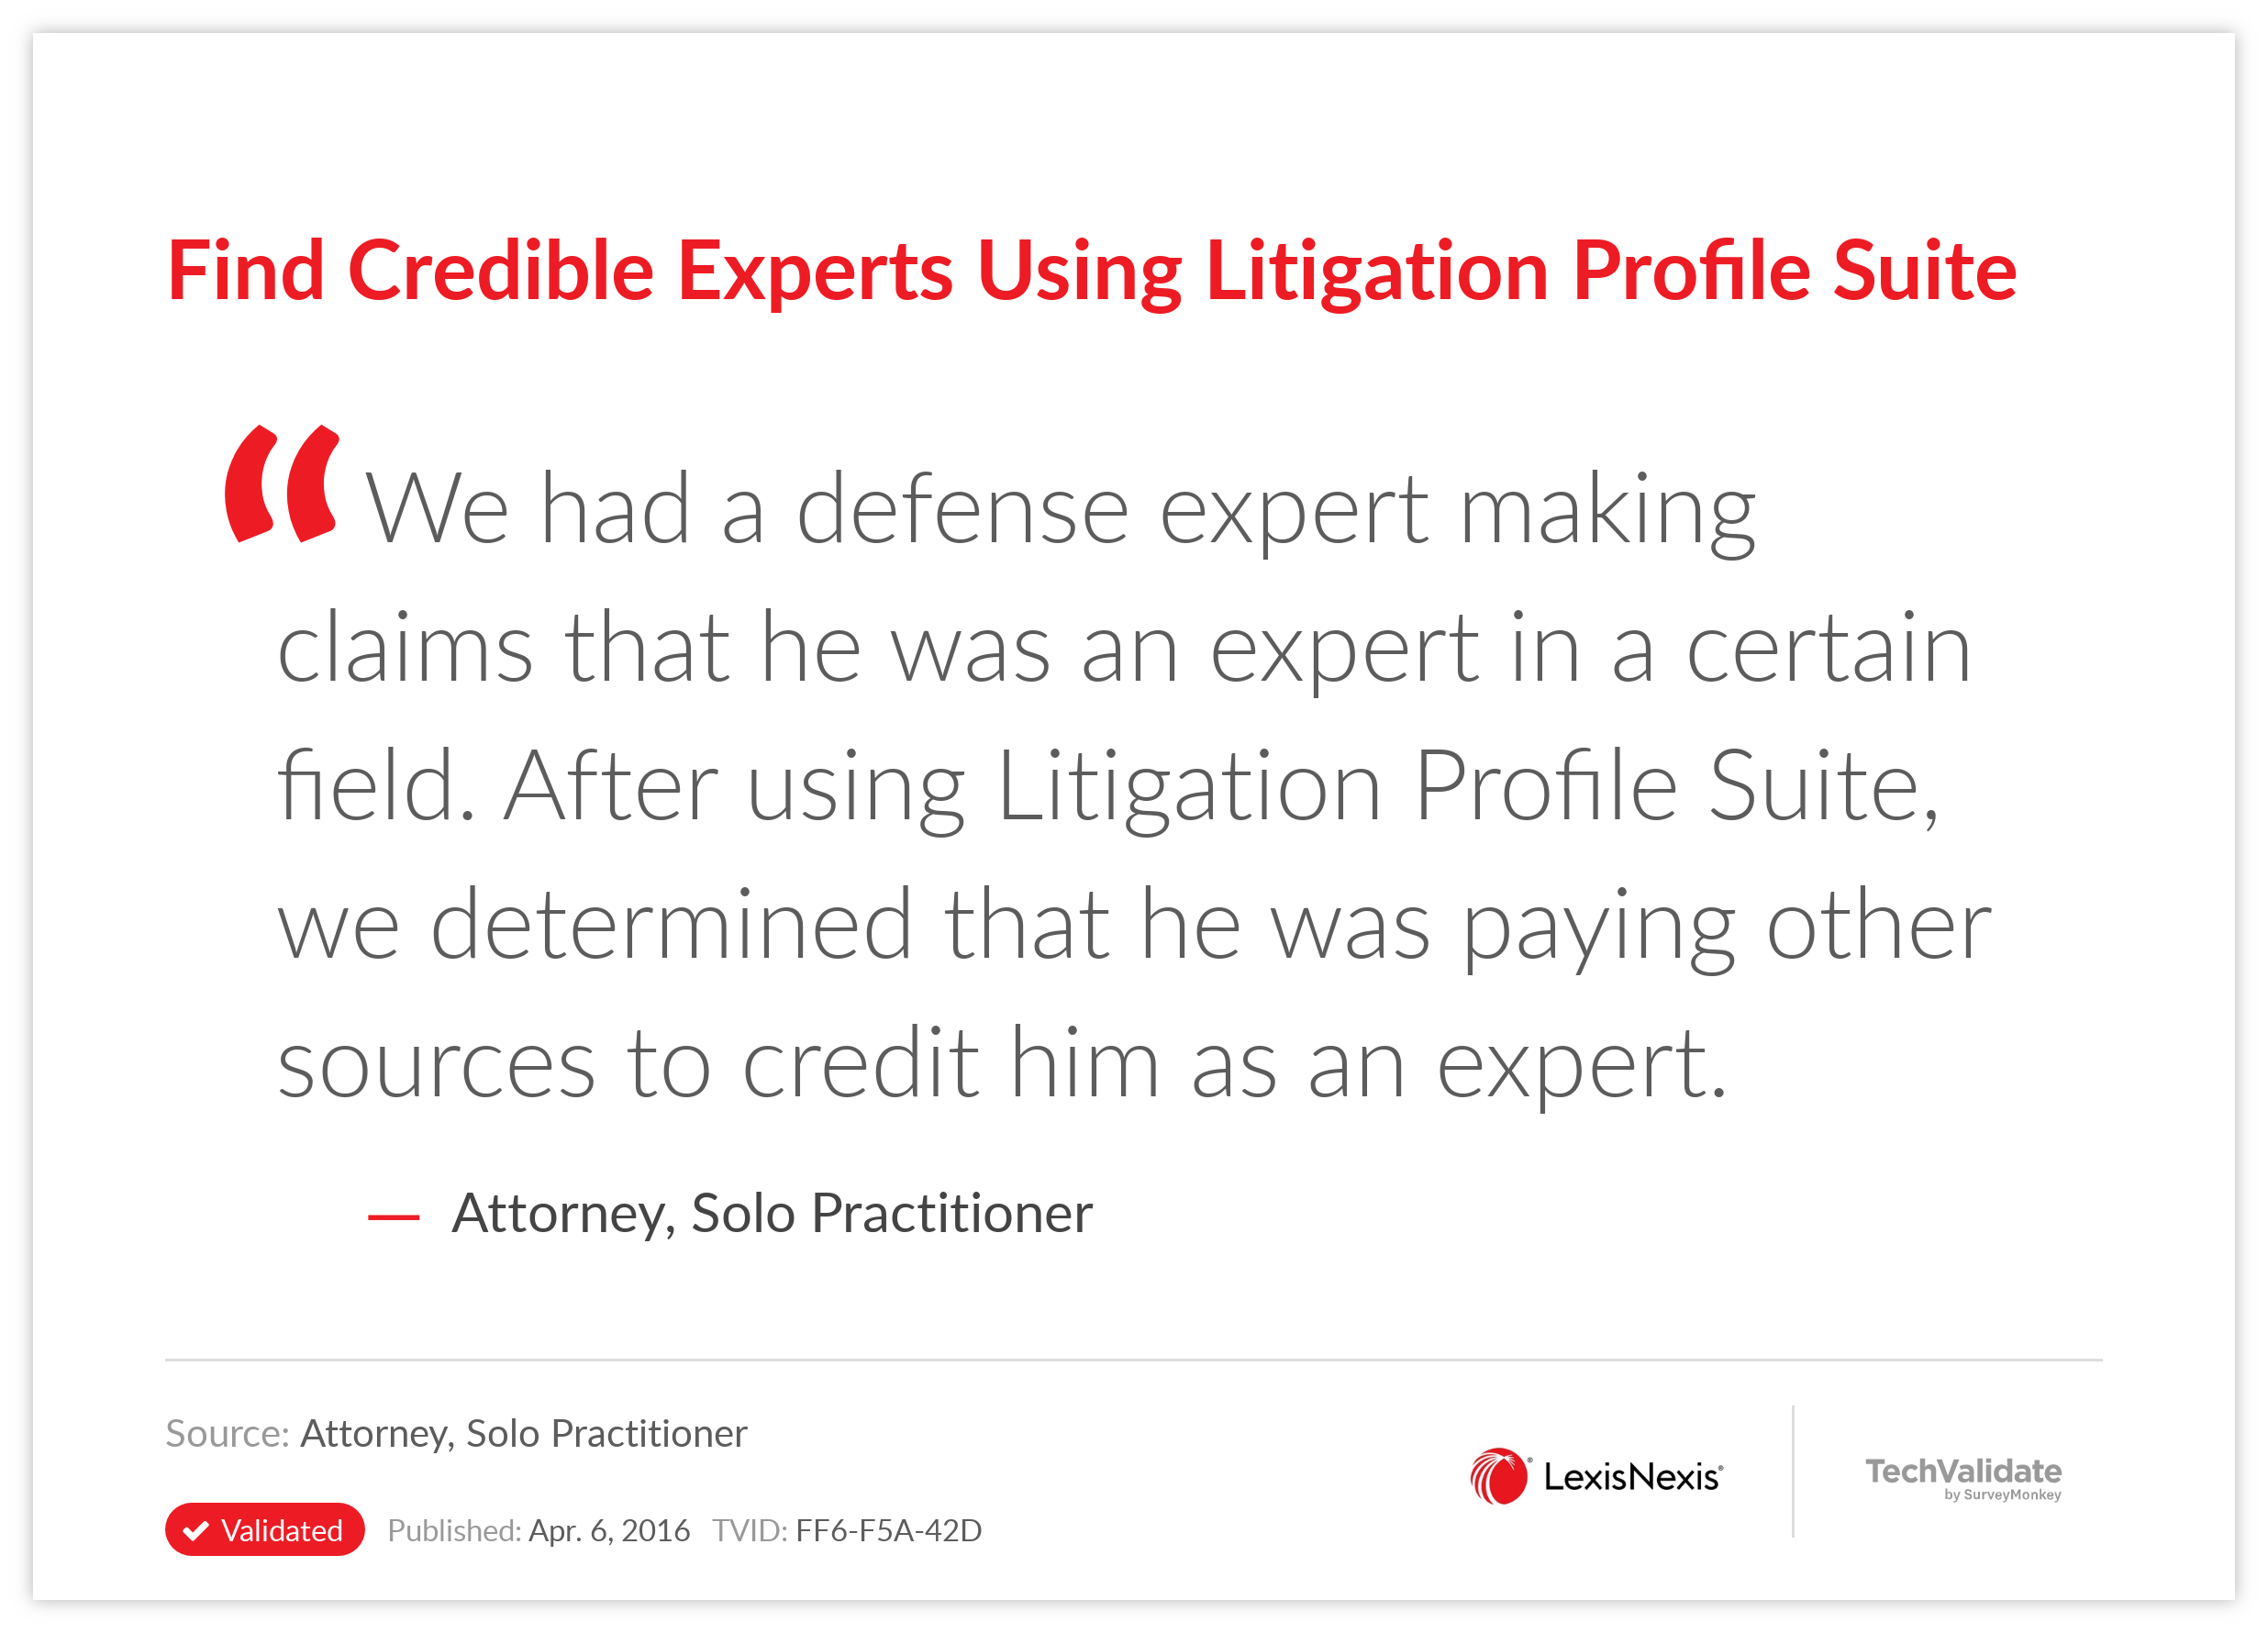 Find Credible Experts Using Litigation Profile Suite